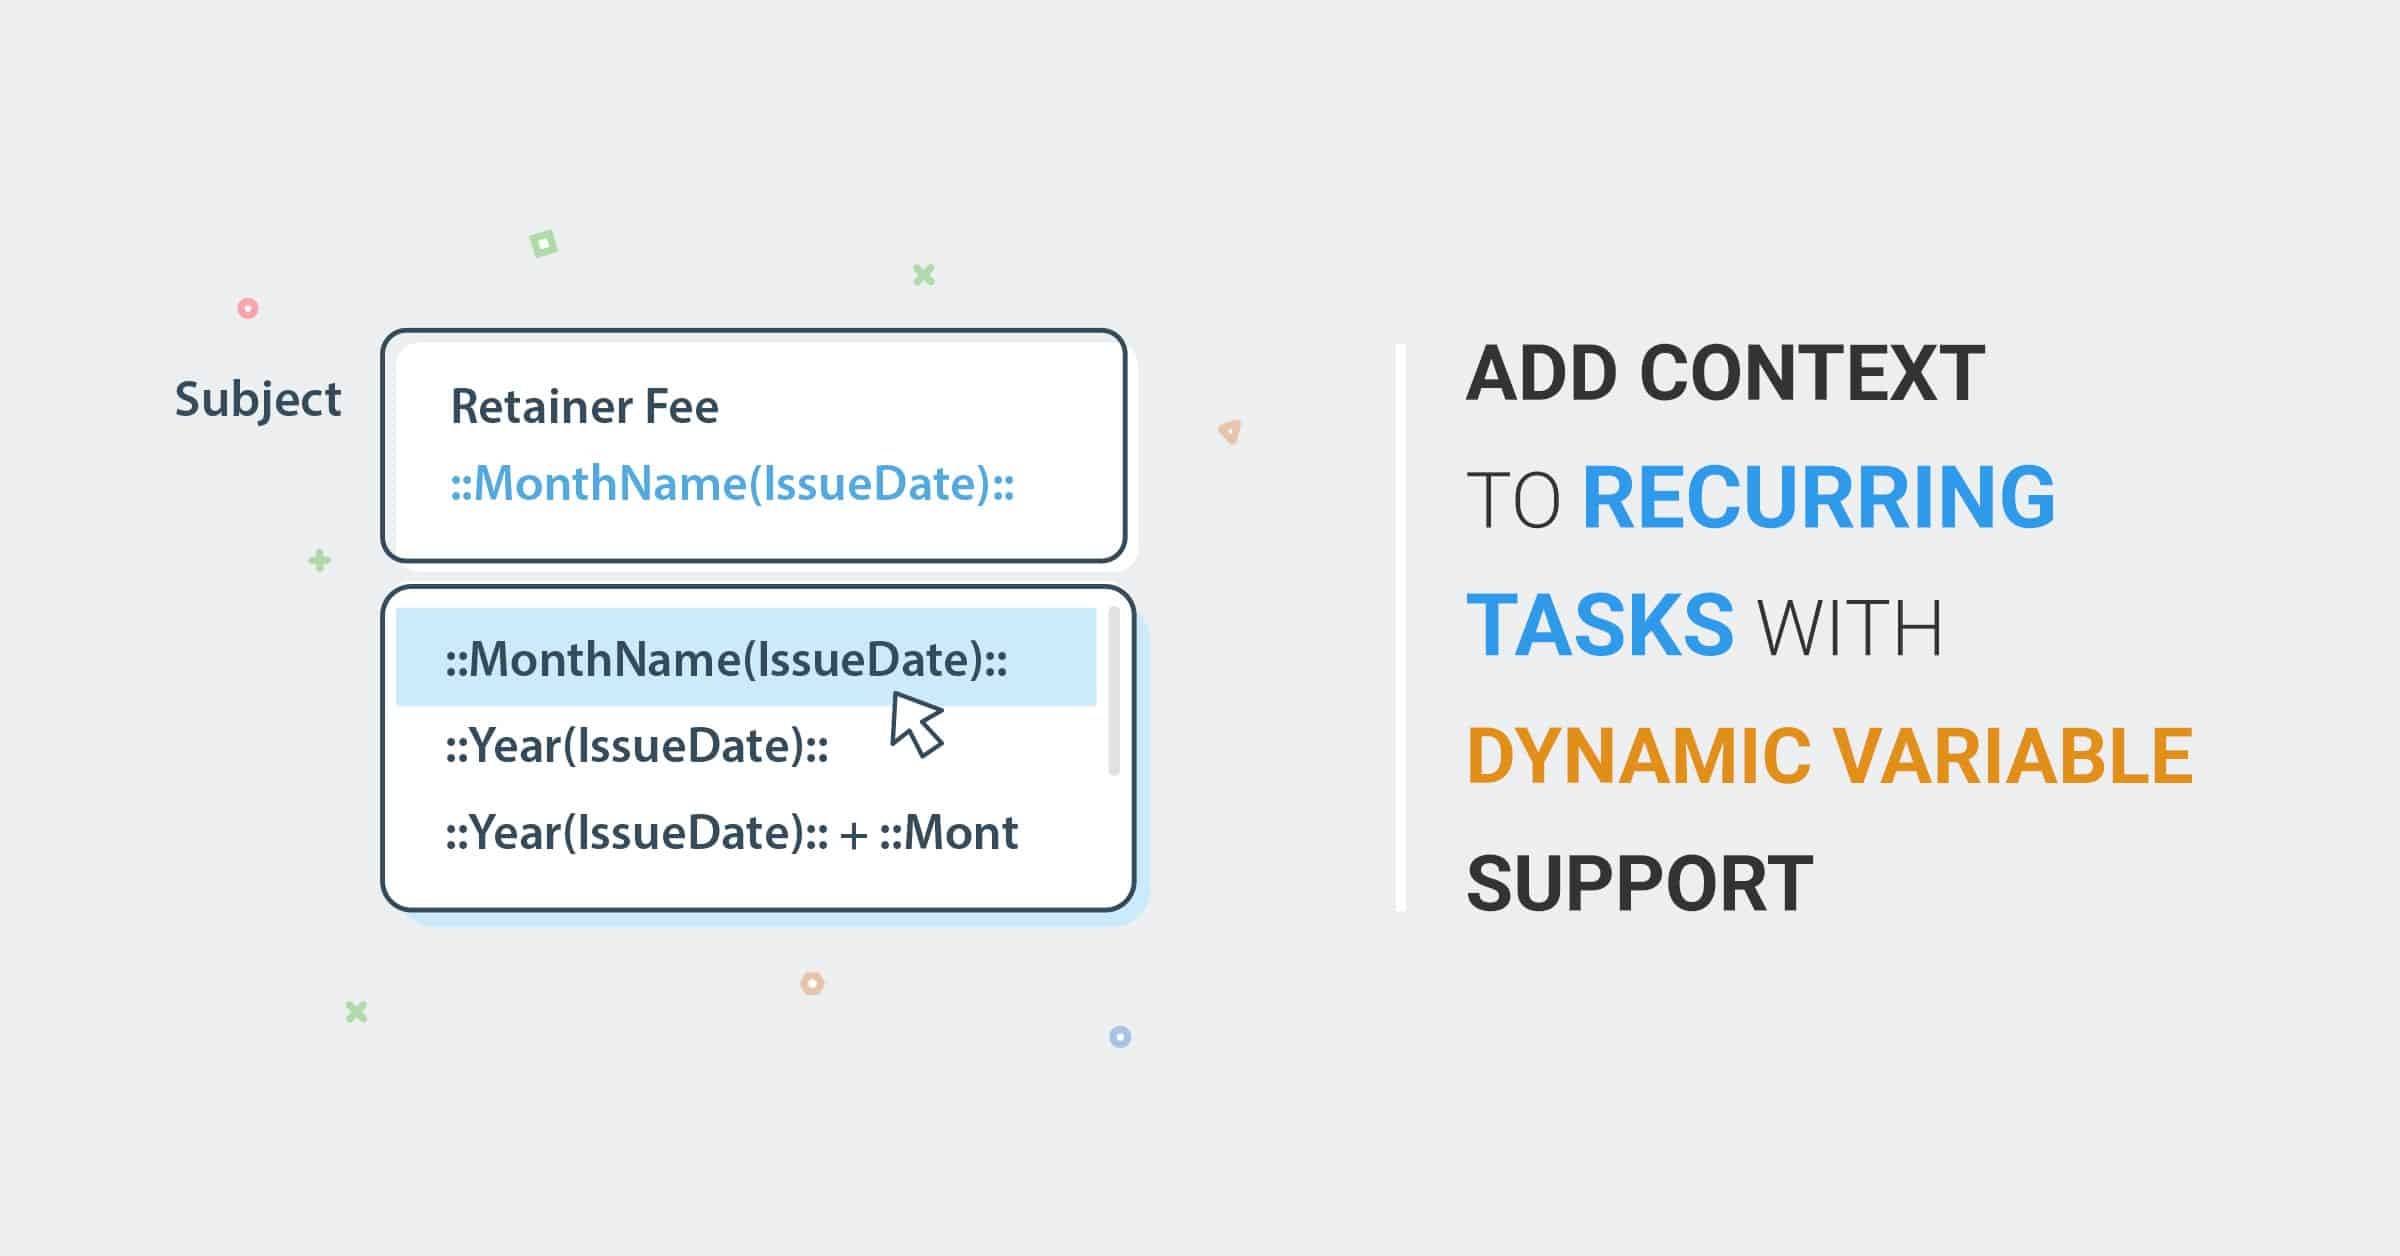 Add context to recurring tasks with dynamic variable support